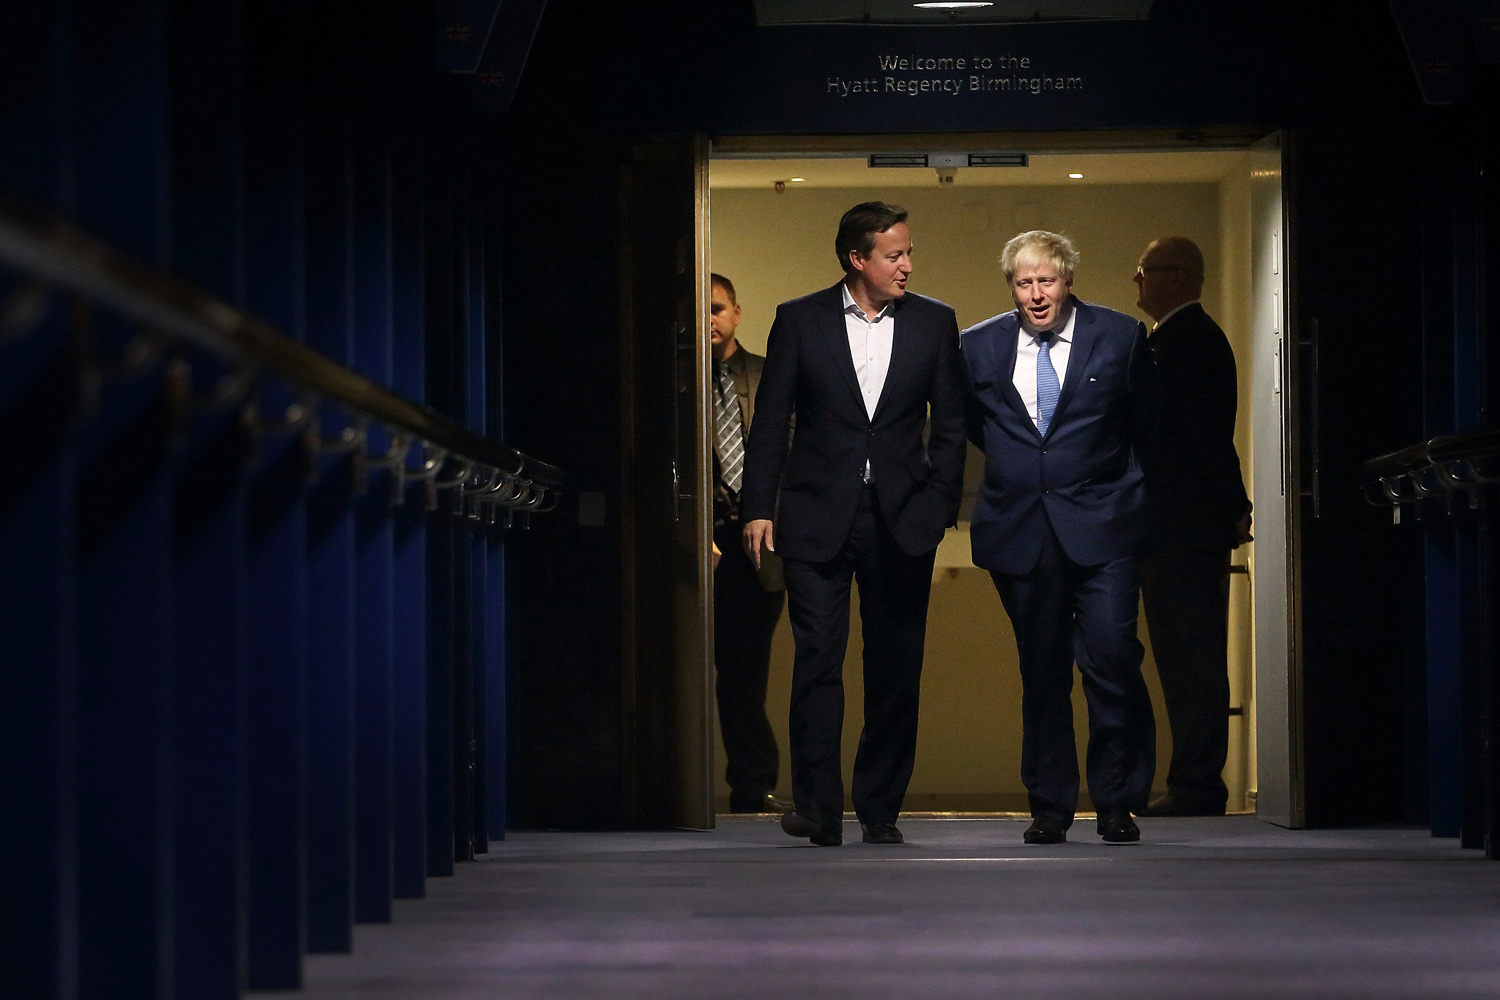 Prime Minister David Cameron walks with Mayor of London and Parliamentary candidate Boris Johnson at the Conservative party conference on Sept. 29, 2014 in Birmingham, England.